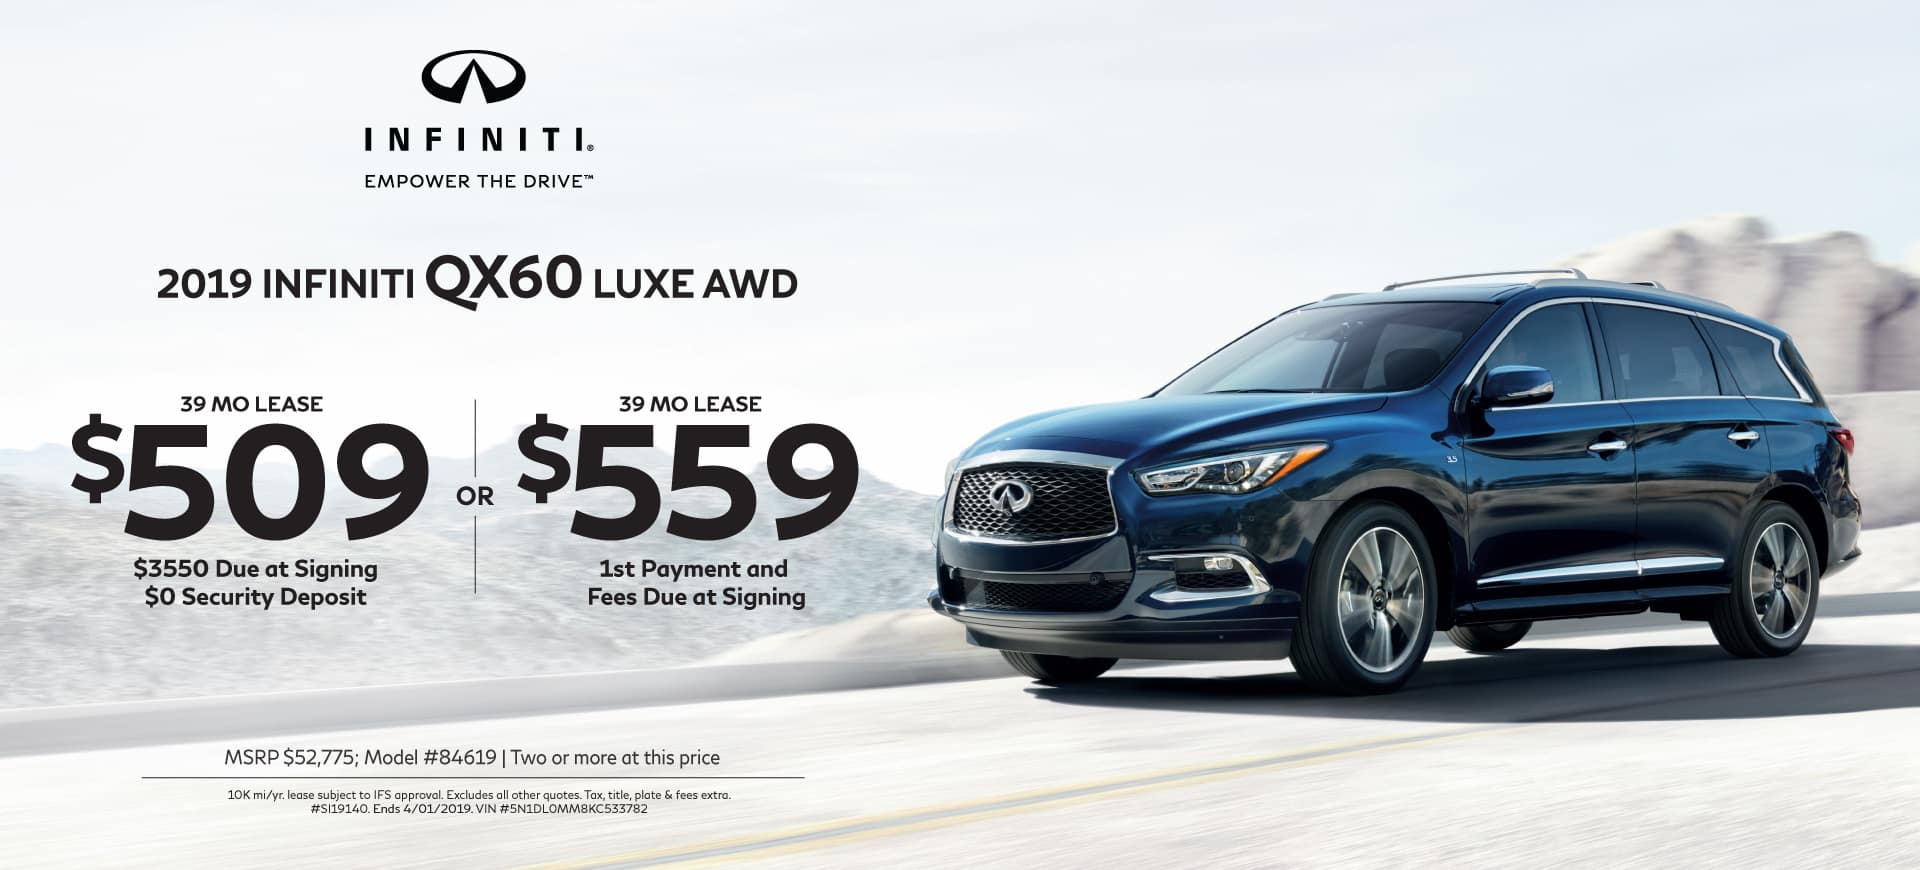 2019 INFINITI Specials QX60 AWD LUXE